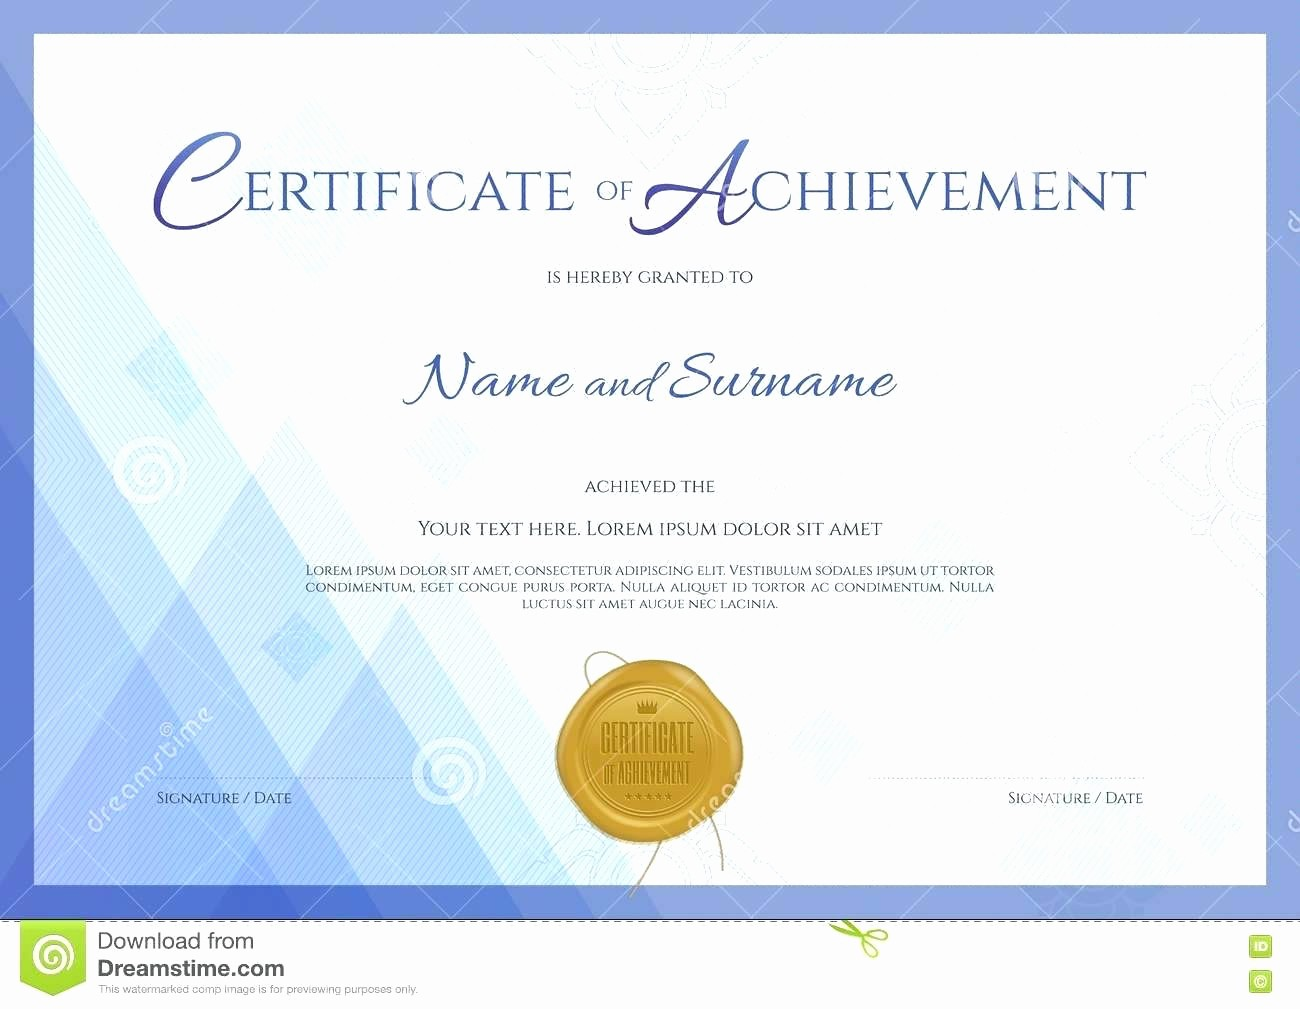 Certificates Of Achievement Templates Free Beautiful Template Certificate Achievement Template